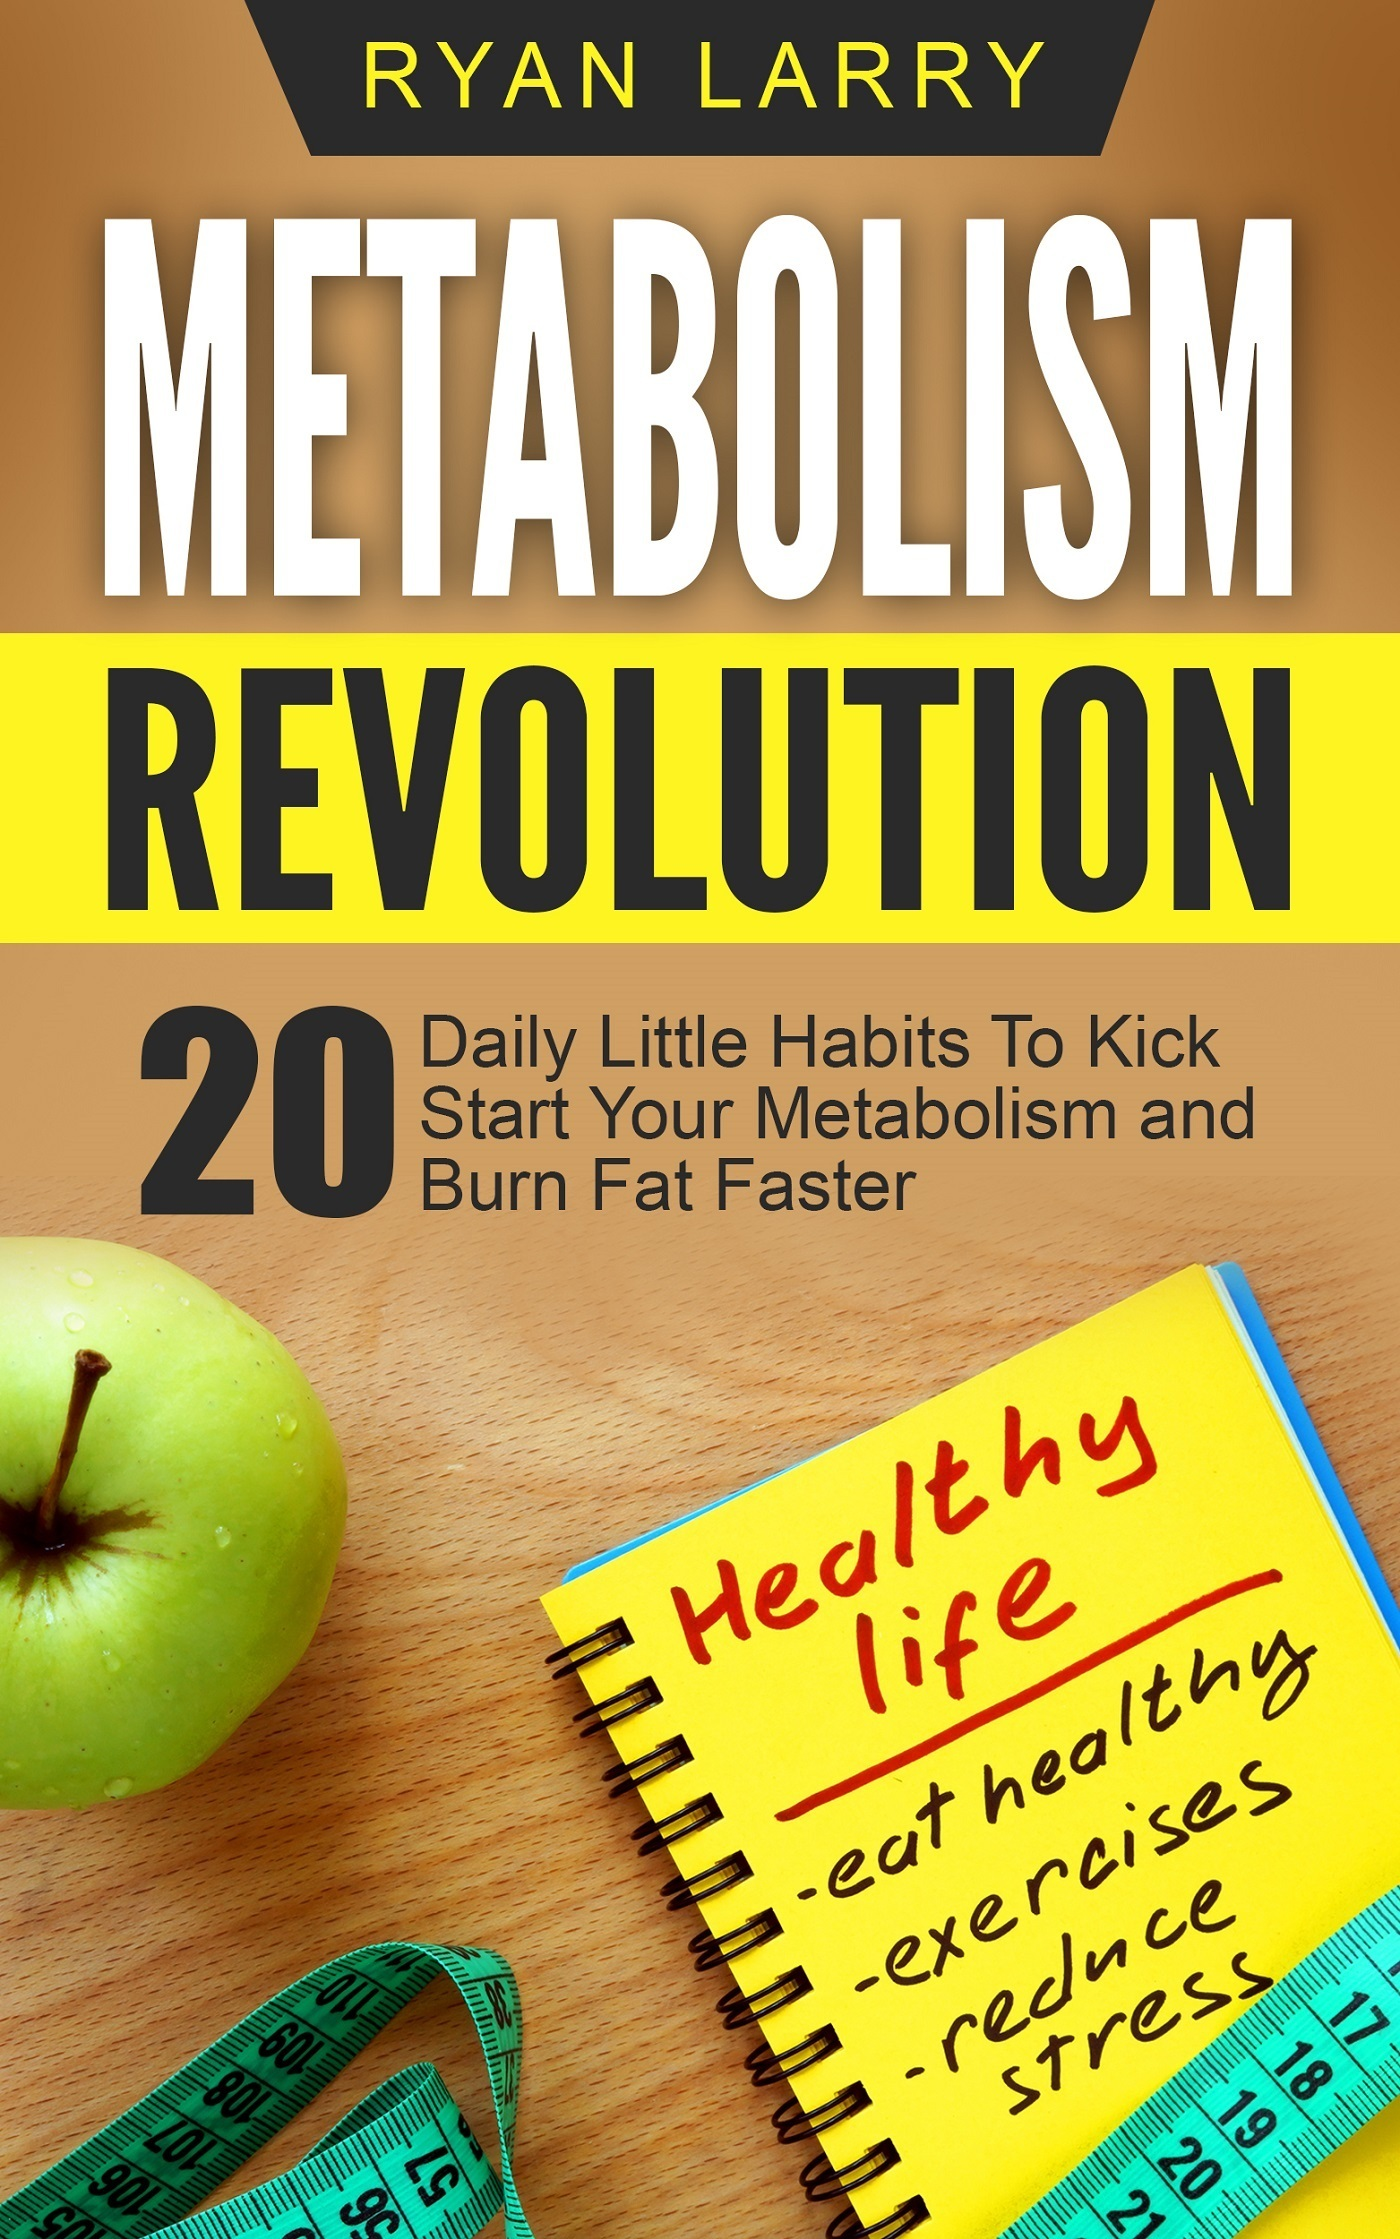 Metabolism Revolution: 20 Daily Little Habits To Kick Start Your Metabolism and Burn Fat Faster  by  Ryan Larry